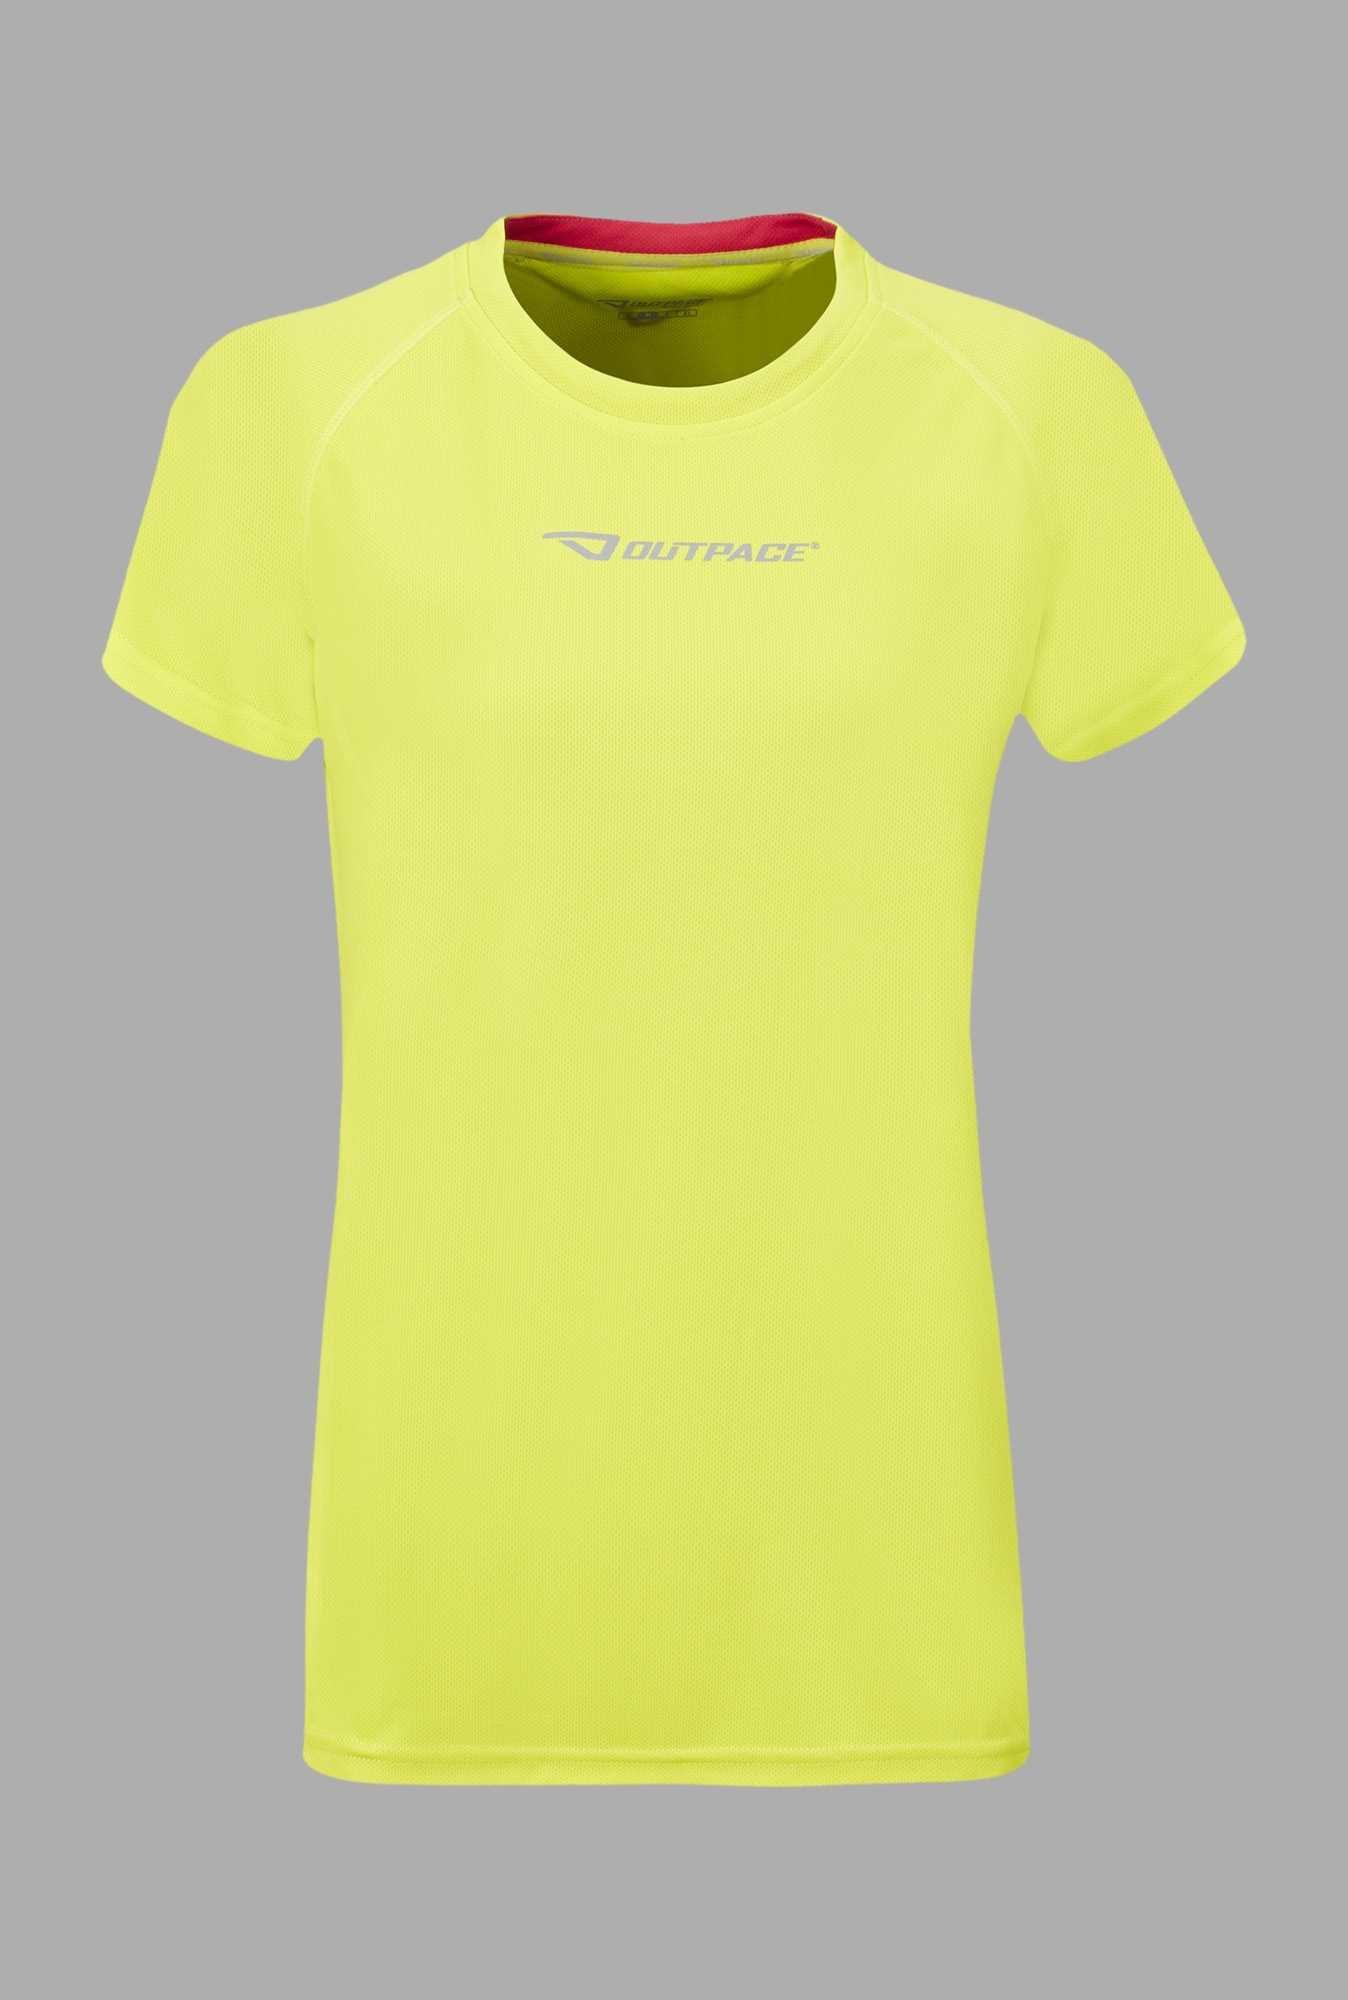 Outpace Lime Green Running T Shirt